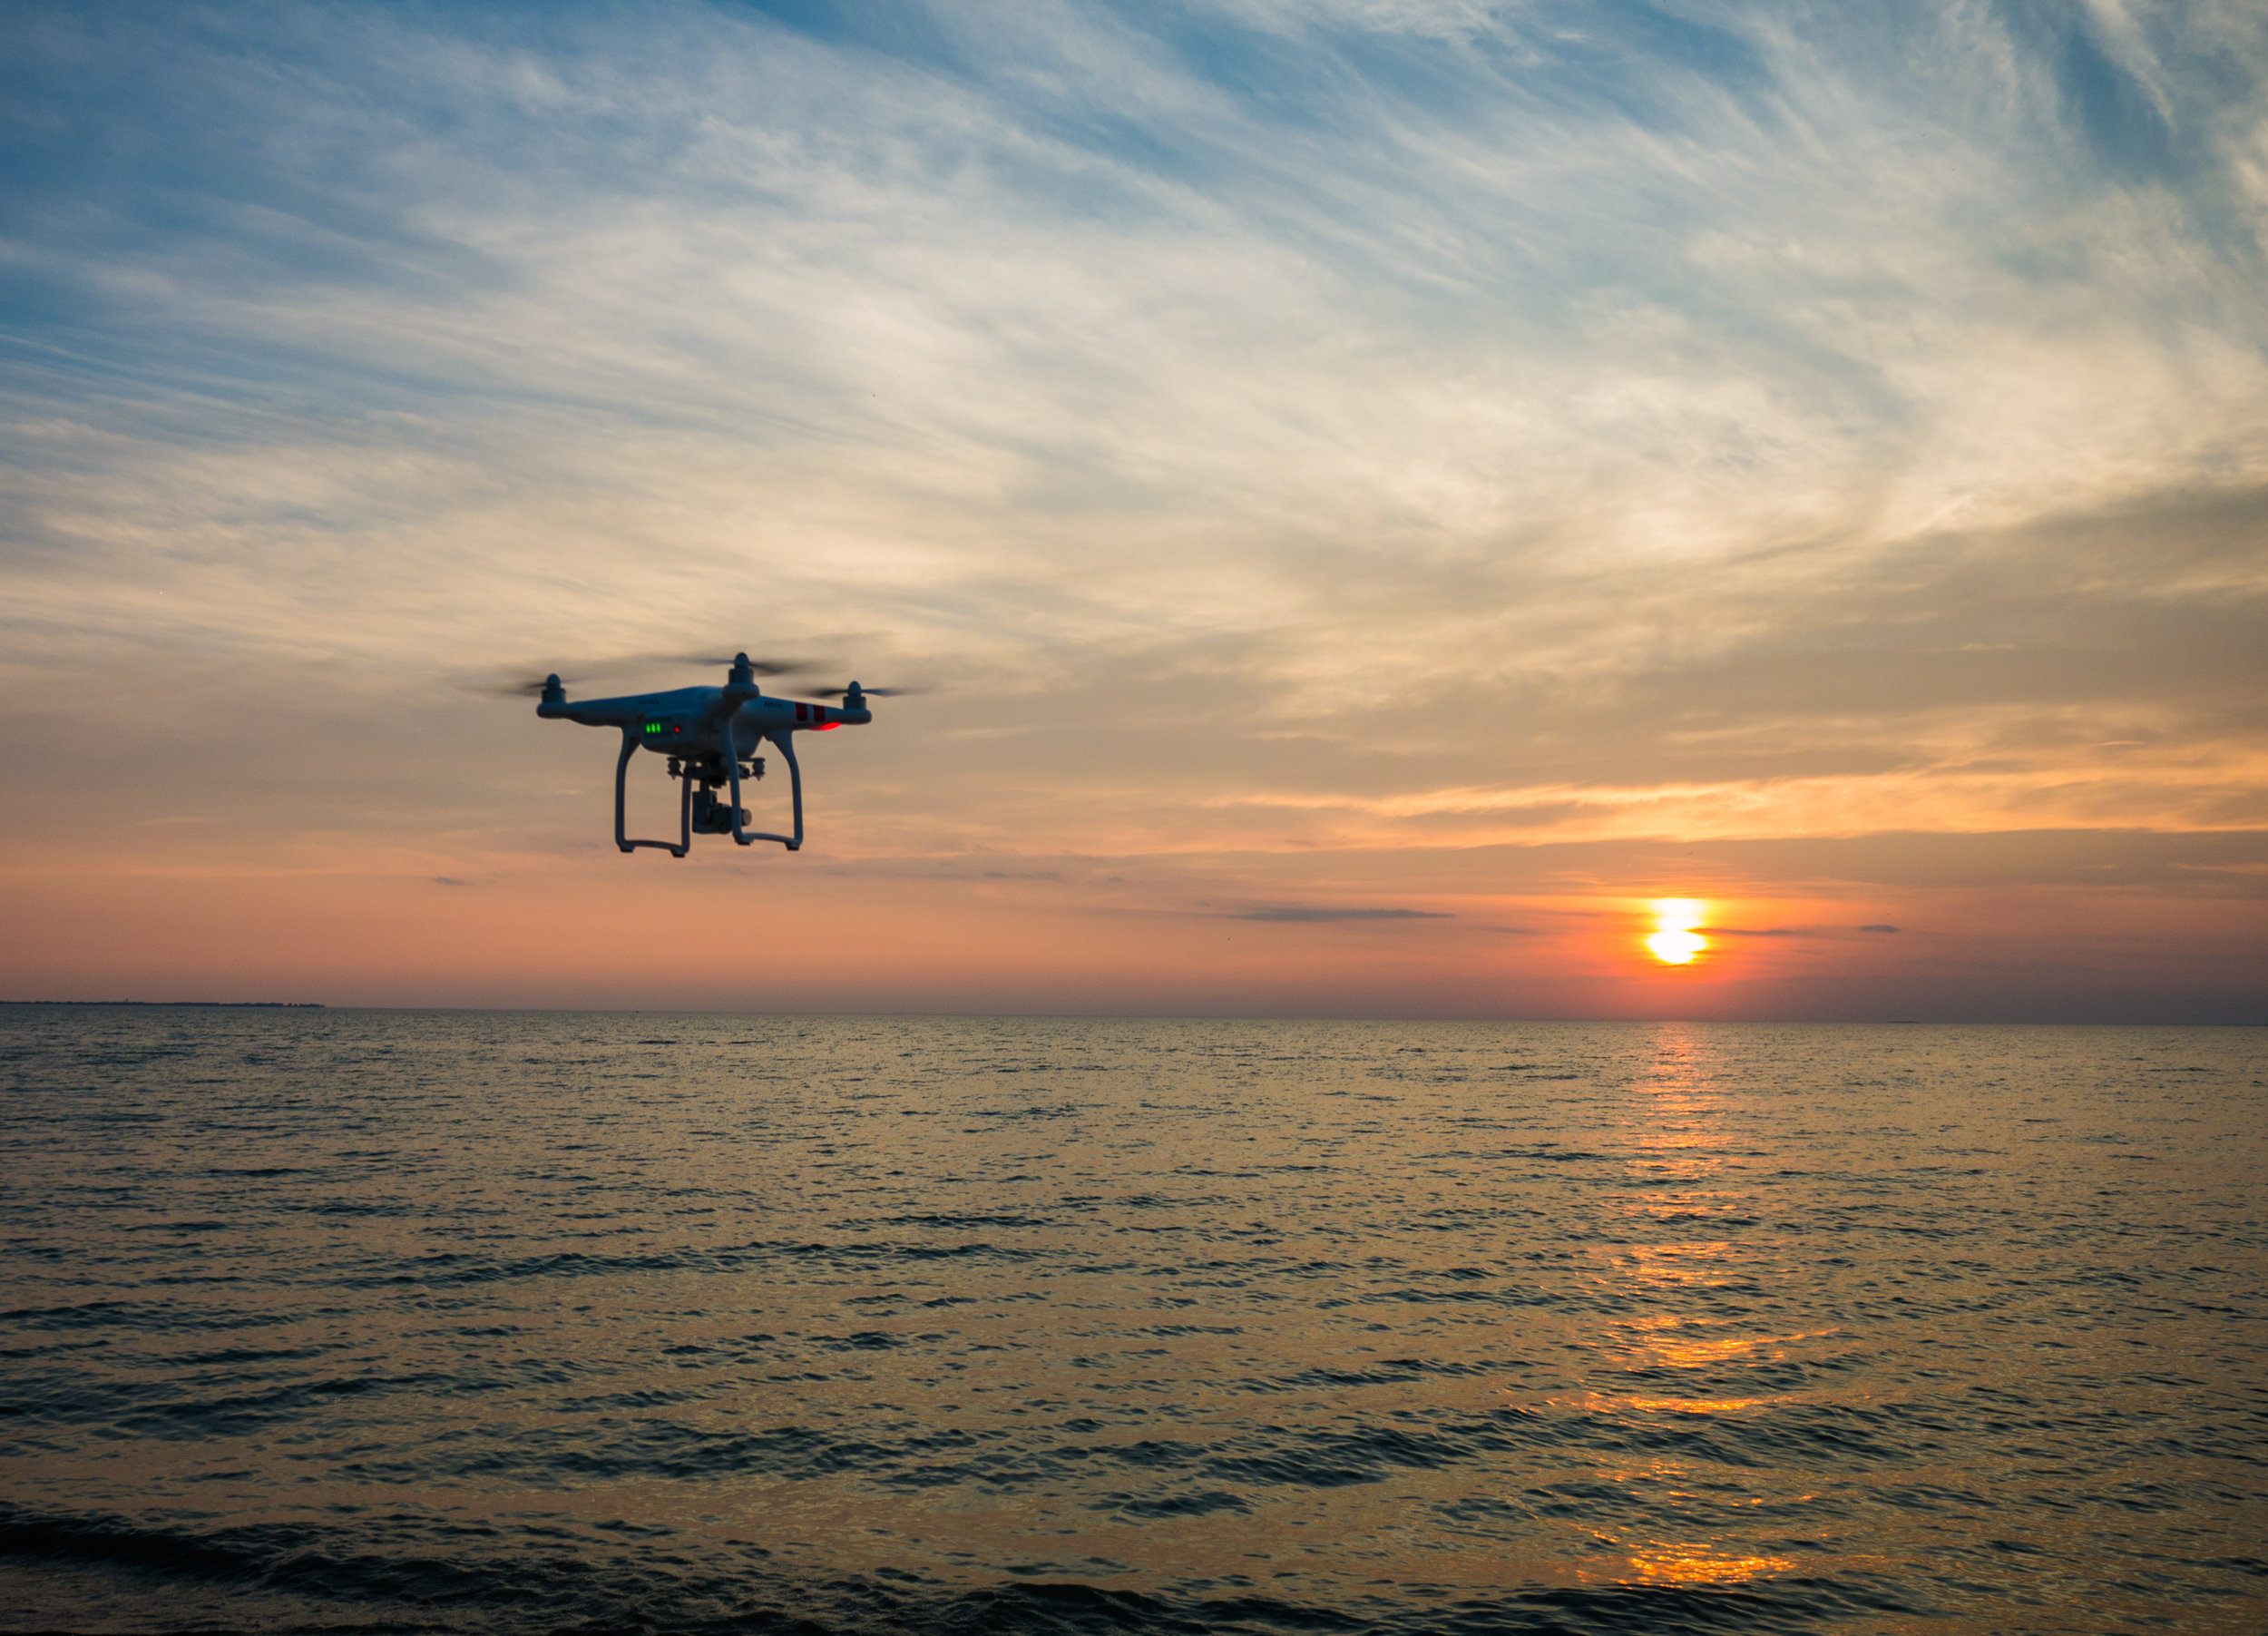 A drone flies toward a setting sun .  Aaron Burden/Unsplash  (CC0 1.0)